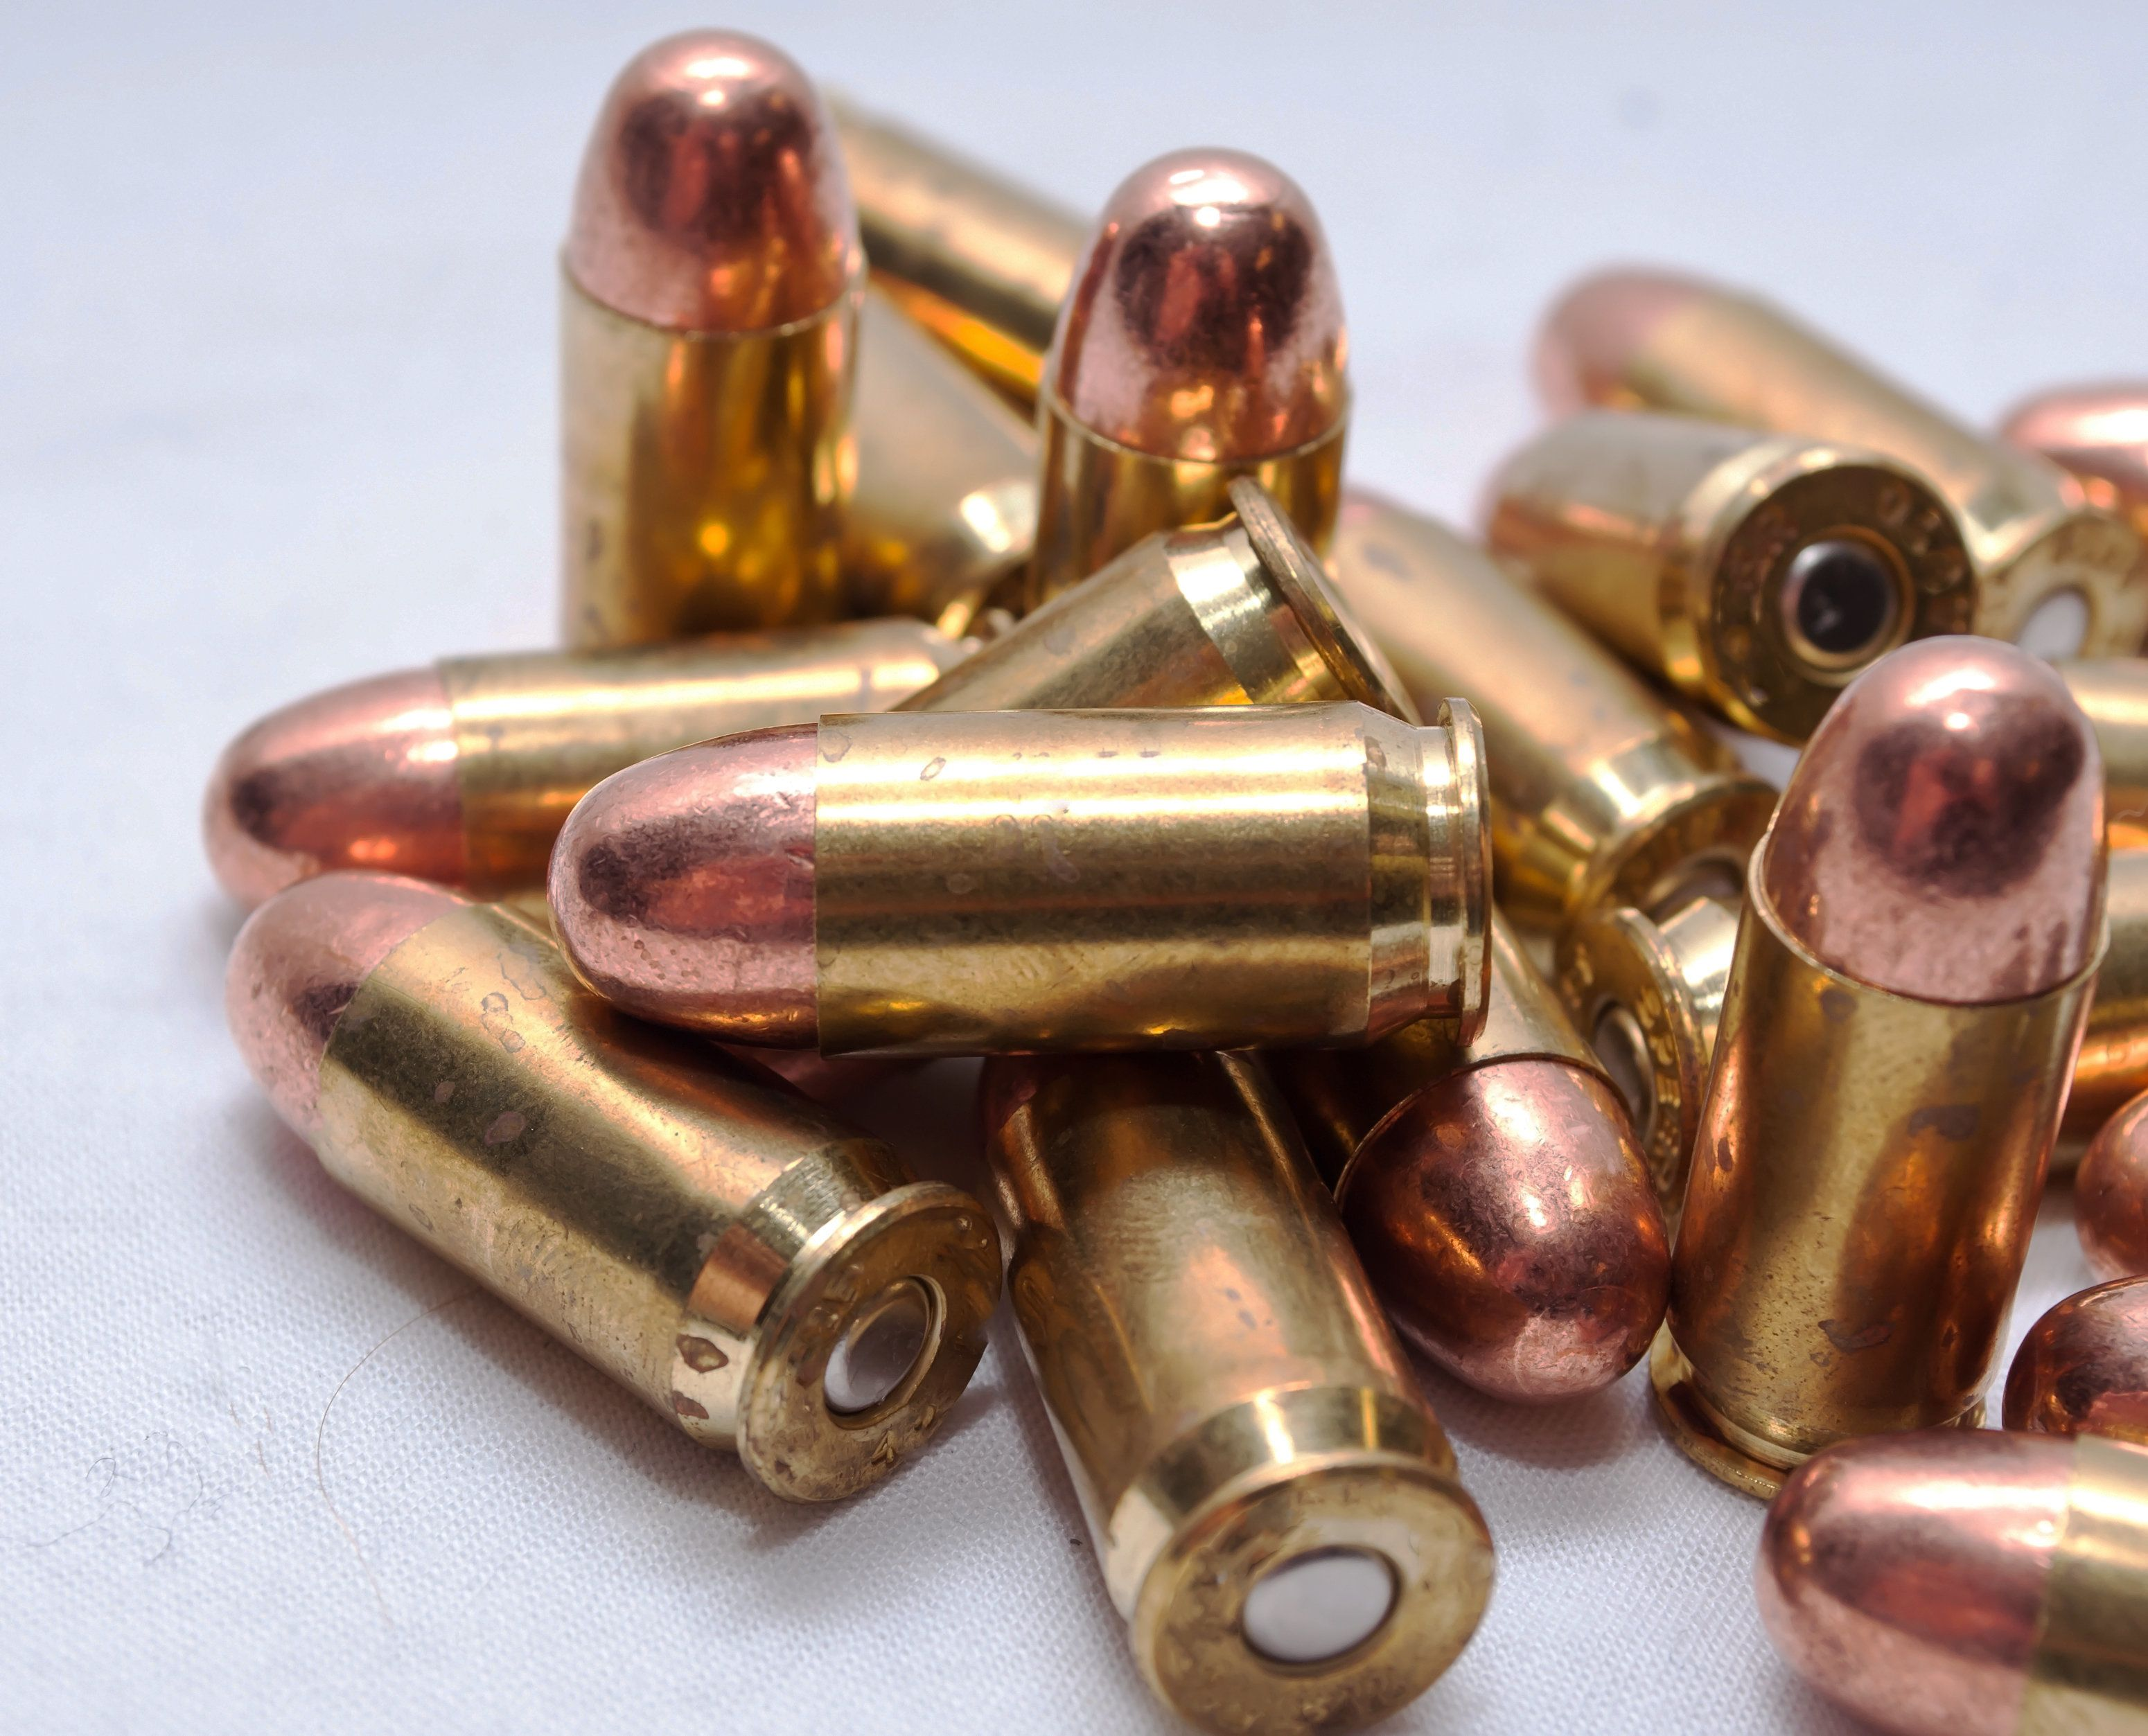 A pile of .45acp full metal jacket bullets on a white background